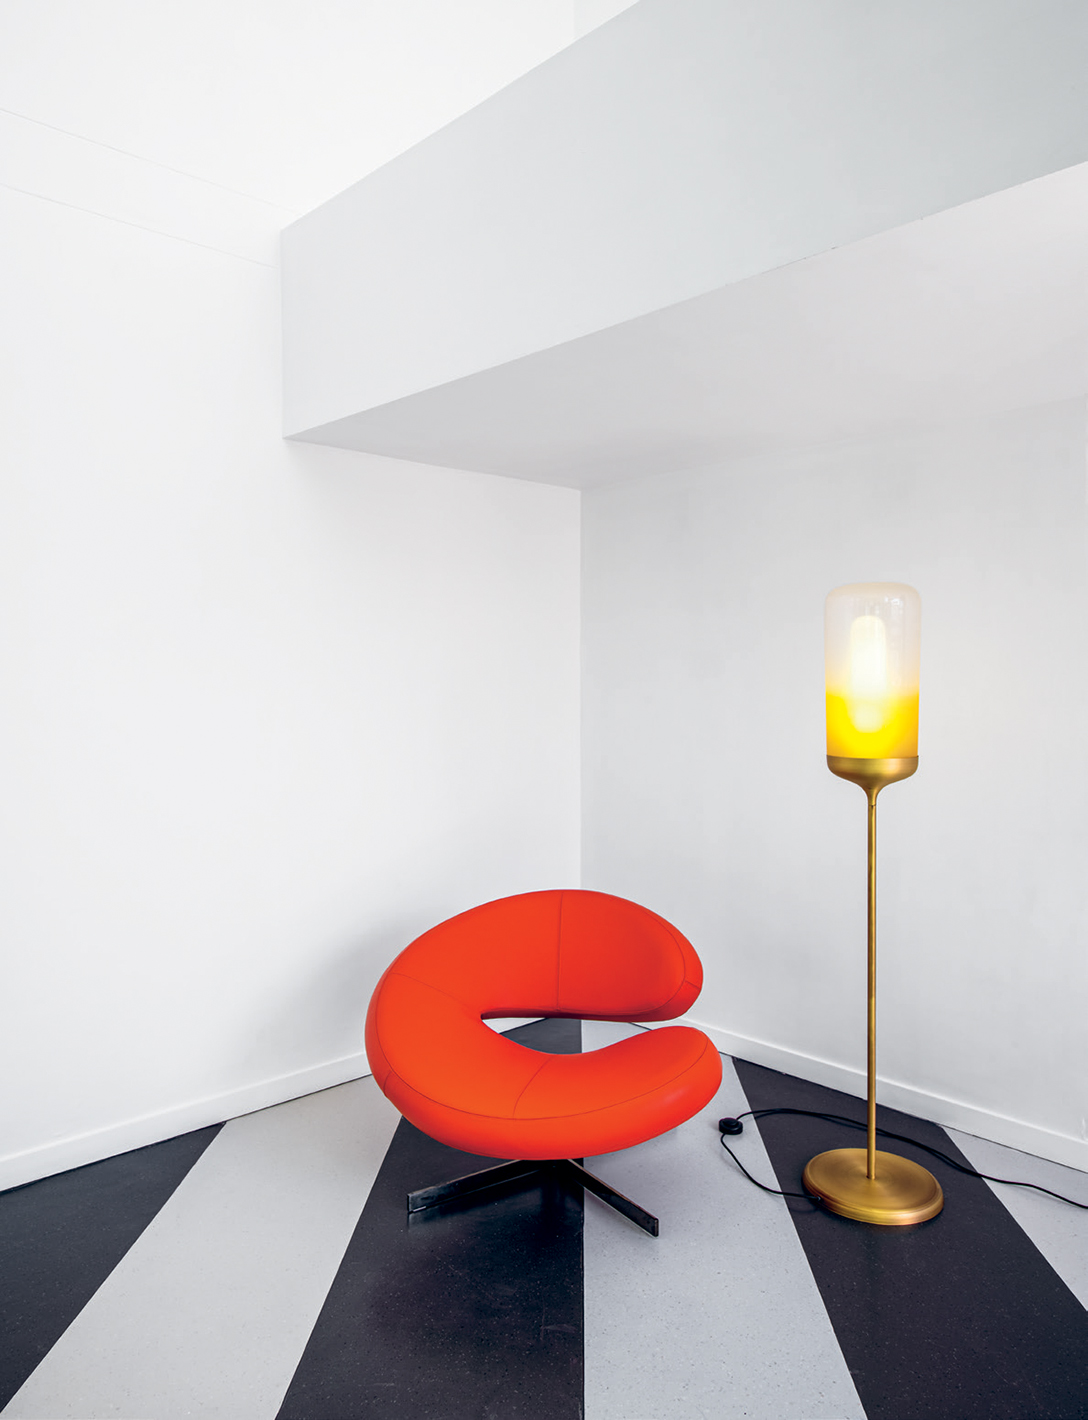 The Nuage chair by Roberto Tapinassi and Maurizio Manzoni and the Cisterna lamp are both from Roche Bobois.